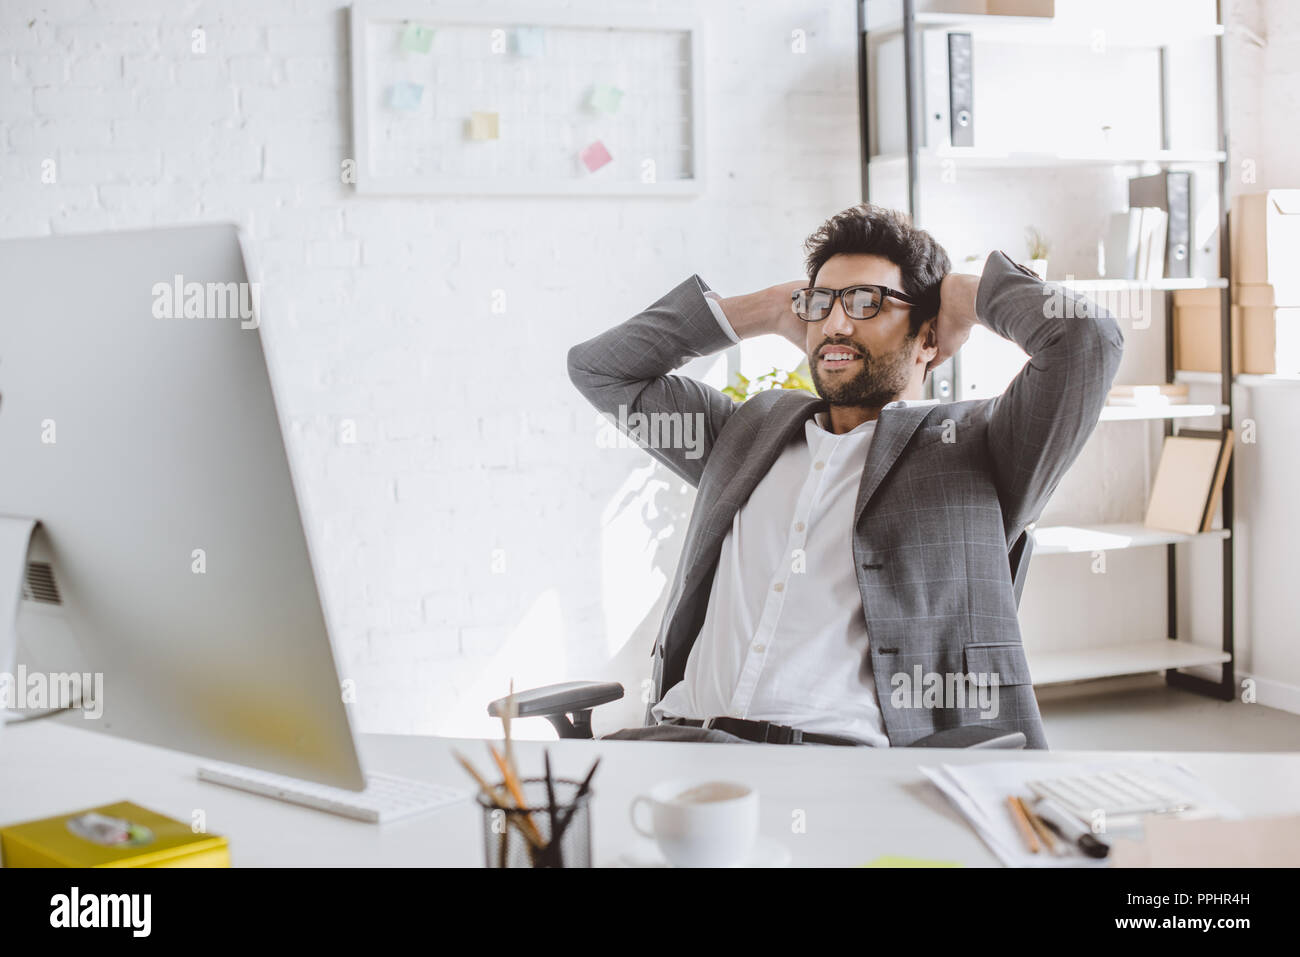 happy handsome businessman looking at computer with hands behind head in office - Stock Image